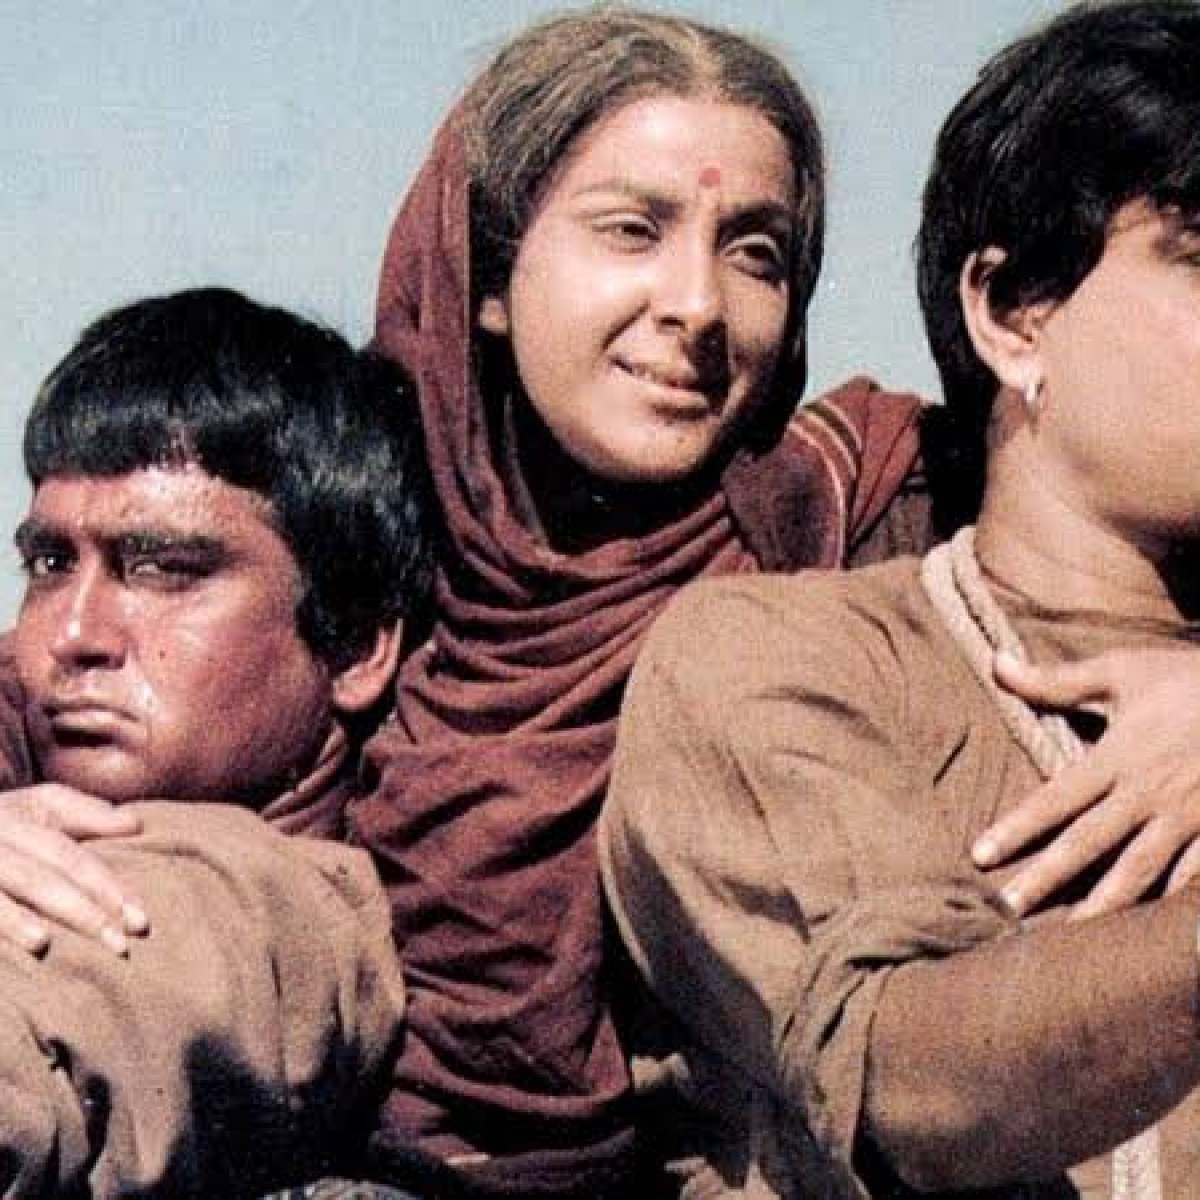 1950: A turning point for the nation and for films